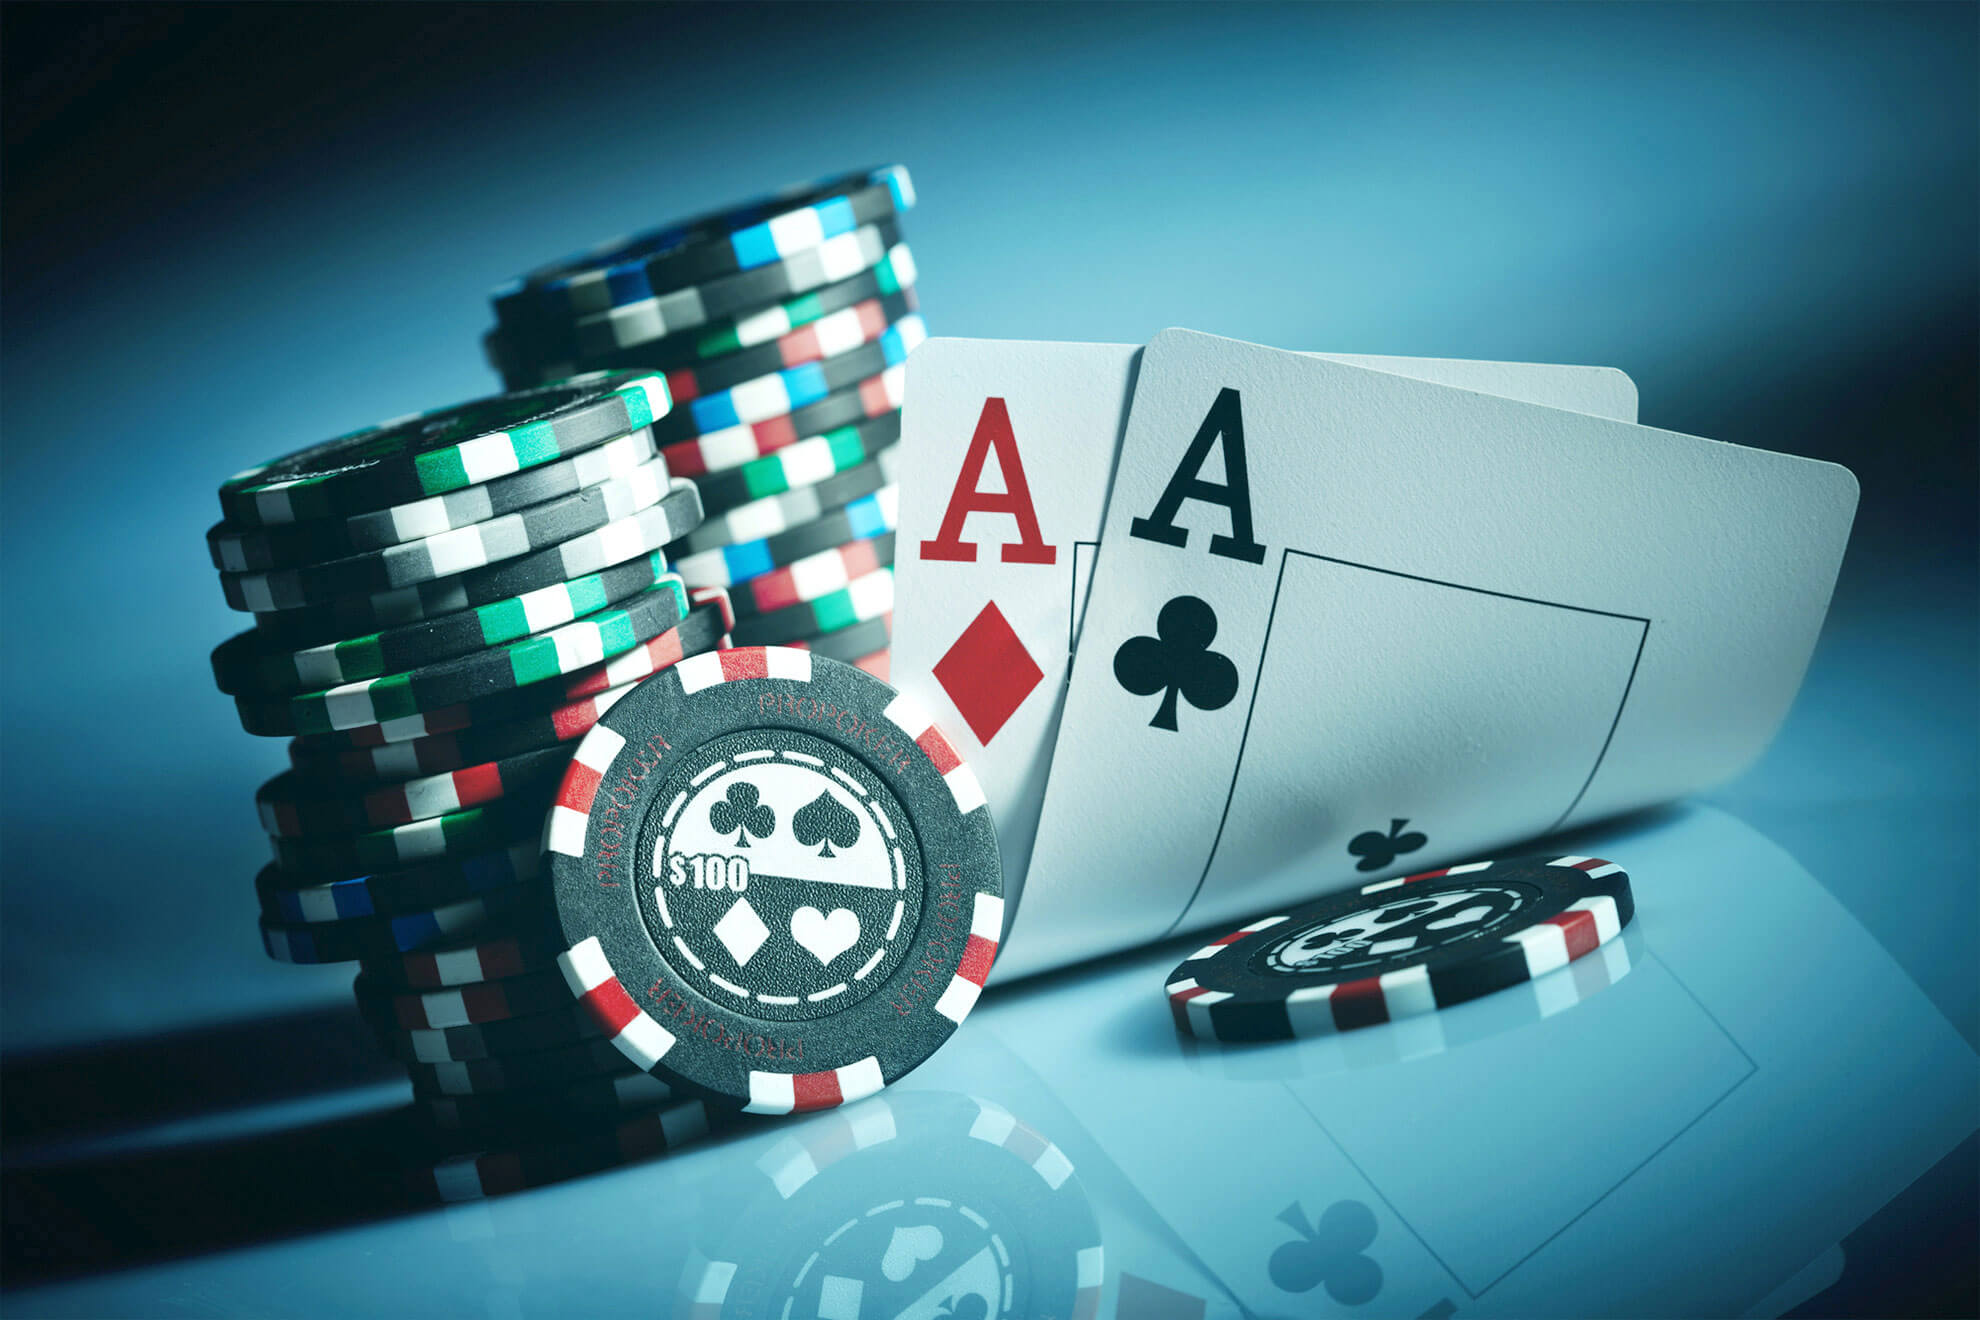 gambling | All the action from the casino floor: news, views and more